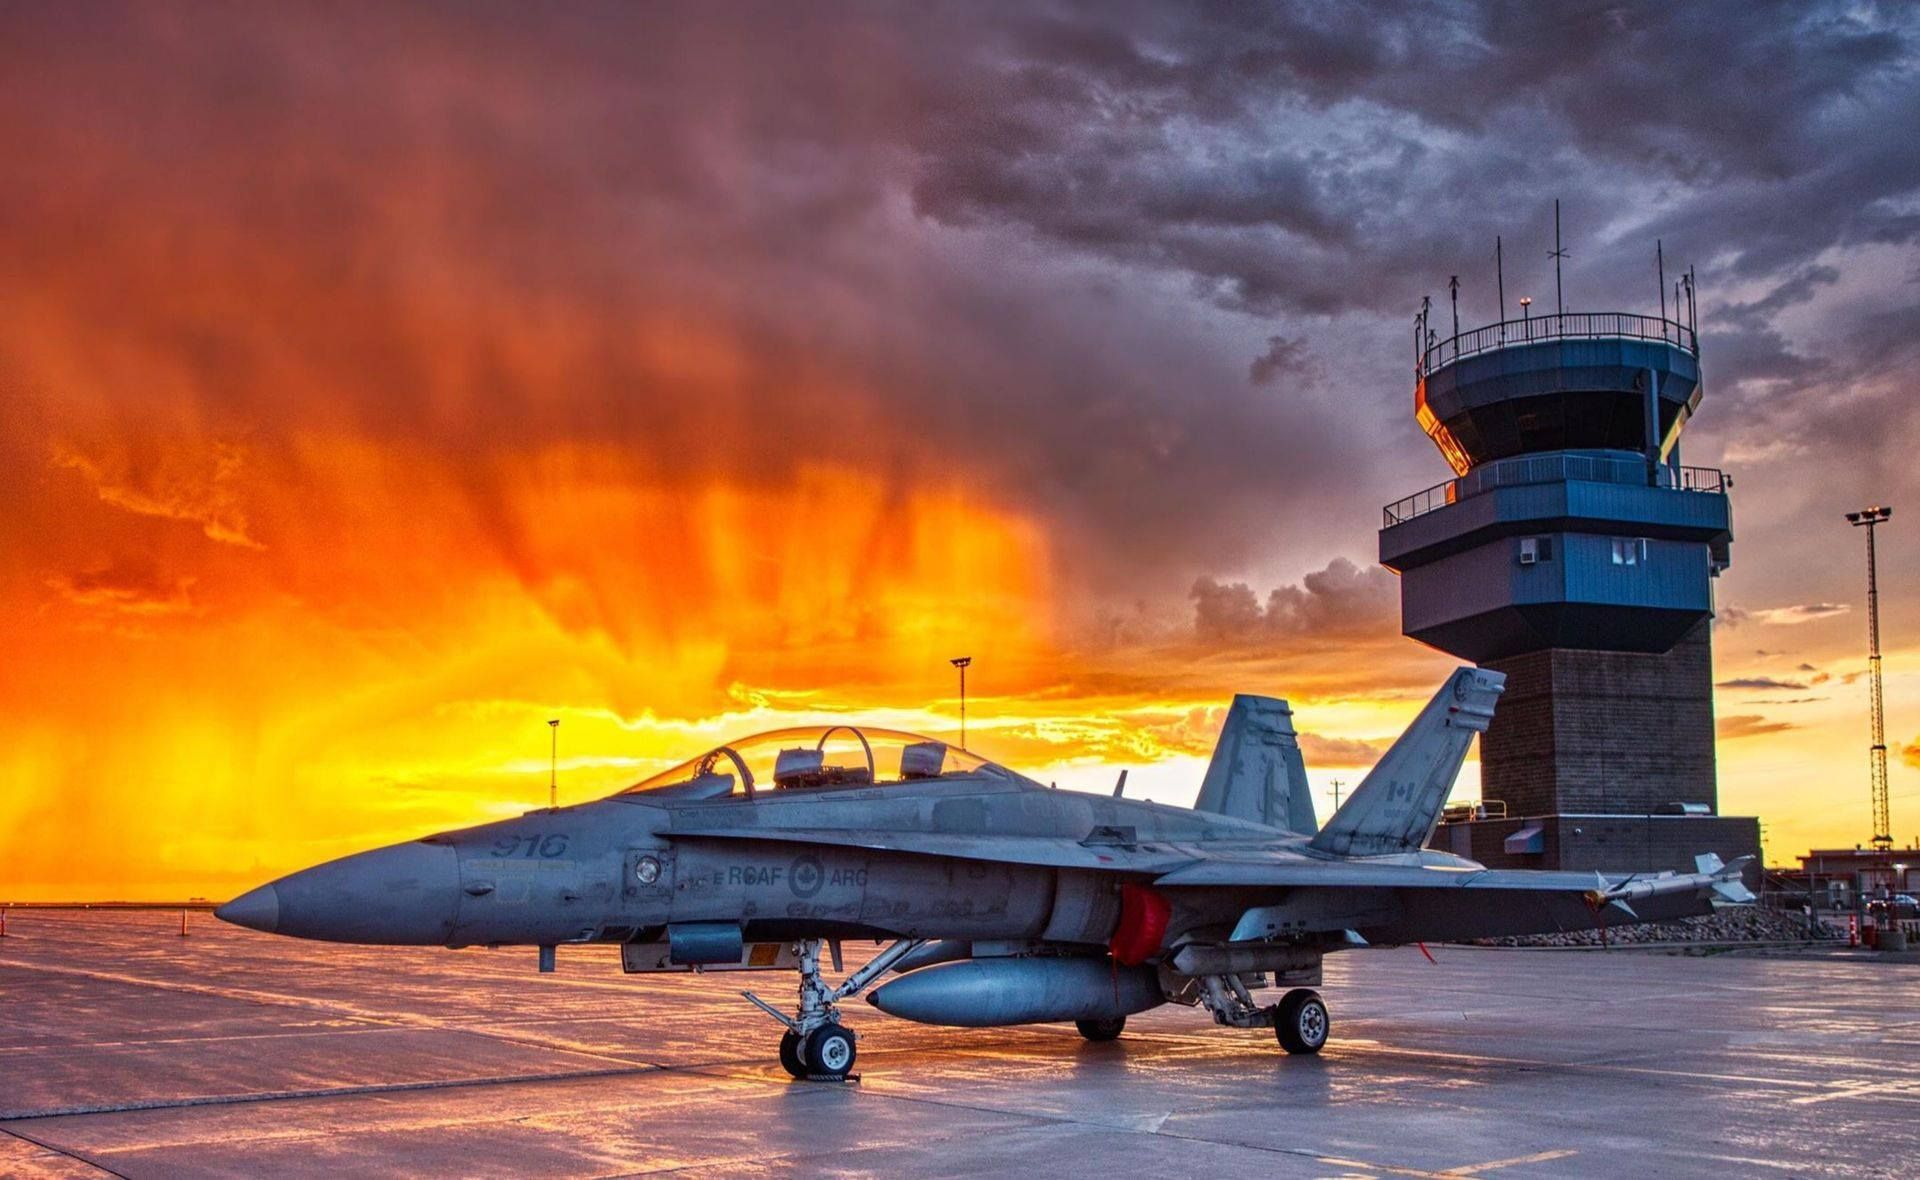 Military Aircraft — Canadian Forces CF18 Demo Team in 2020